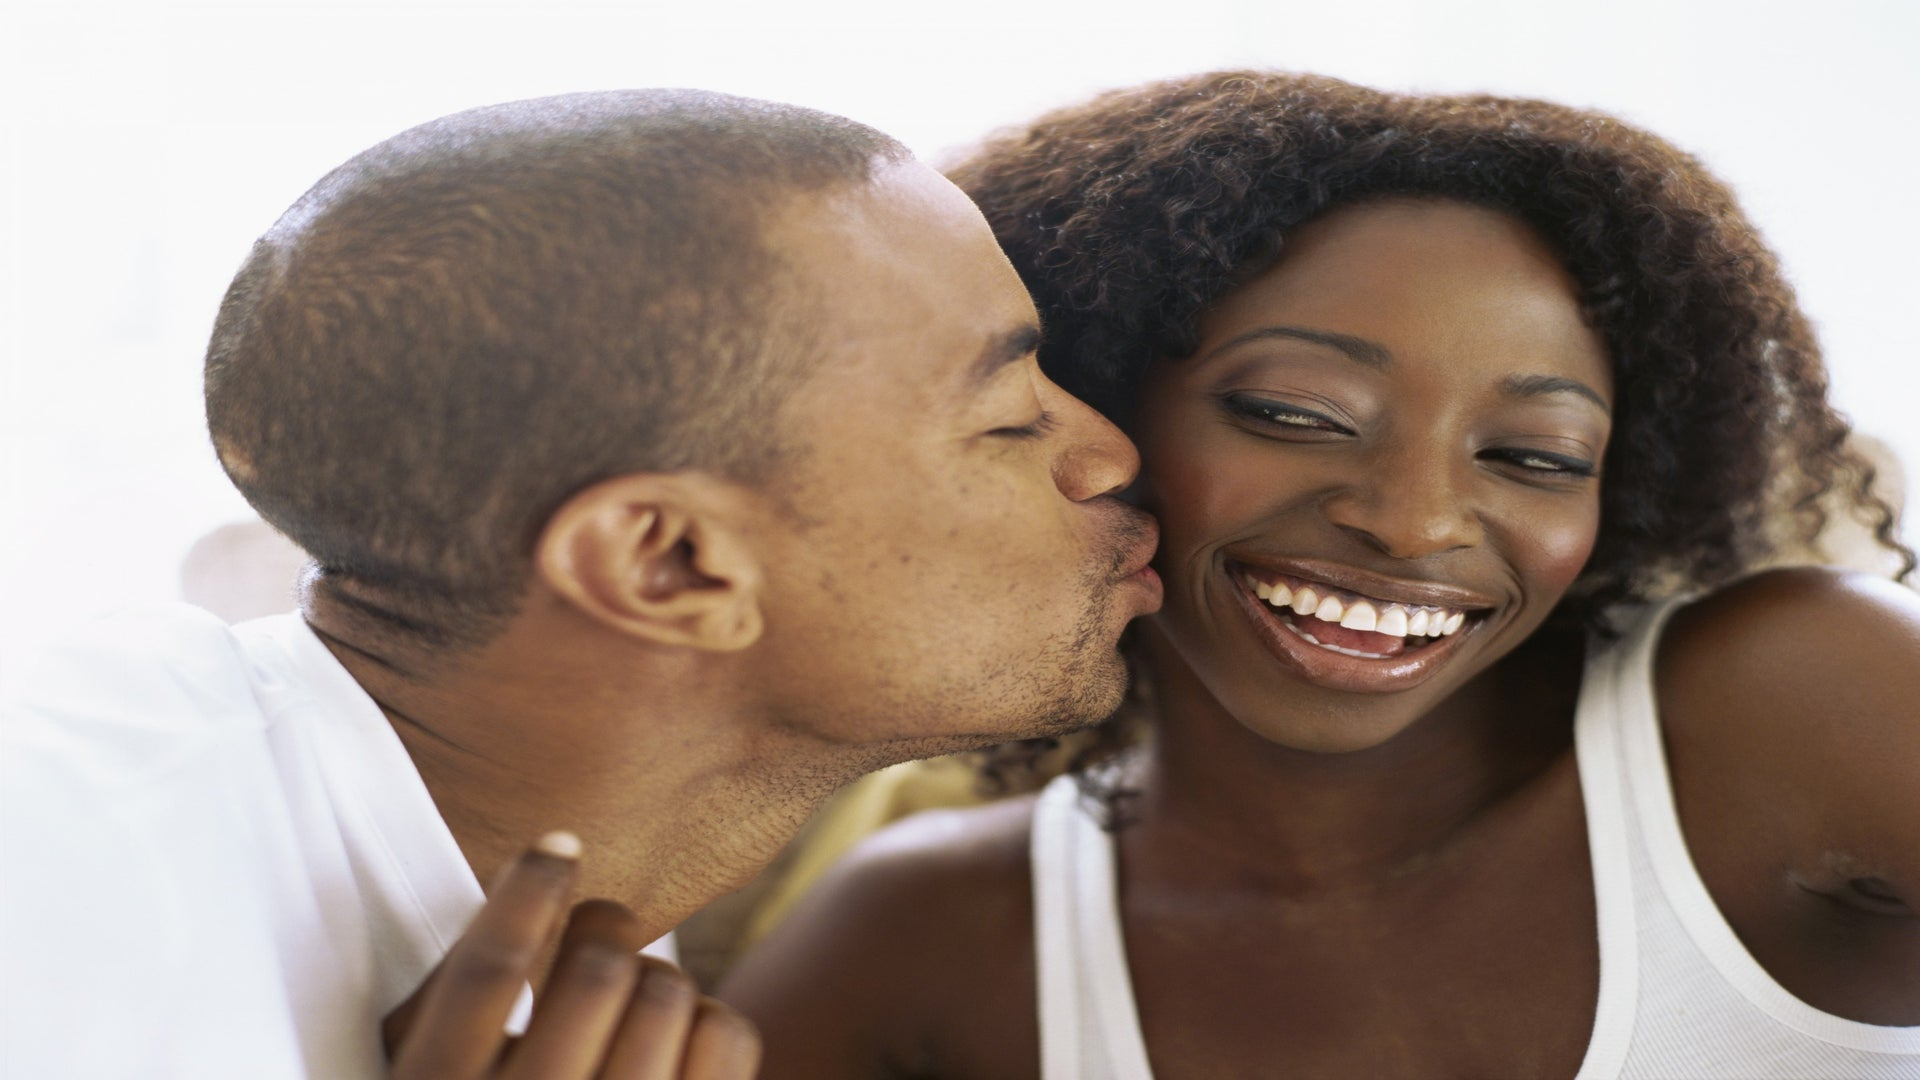 10 Signs You May Be Ready to Get Intimate